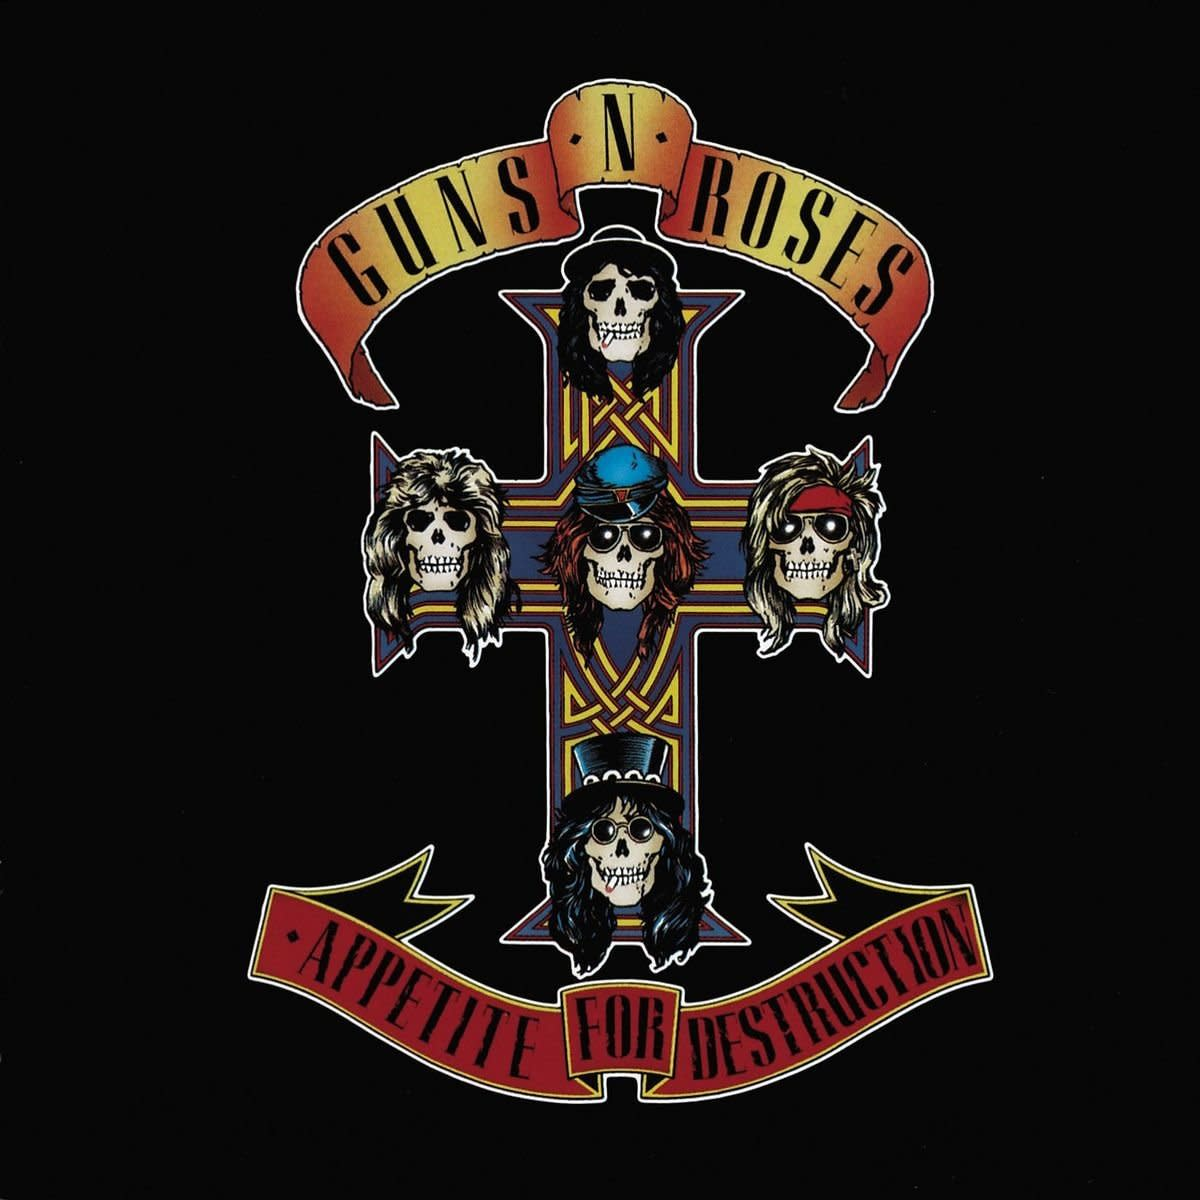 Guns N Roses Appetite For Destruction: A Mean Spirited Masterpiece That Still Sounds Good Today